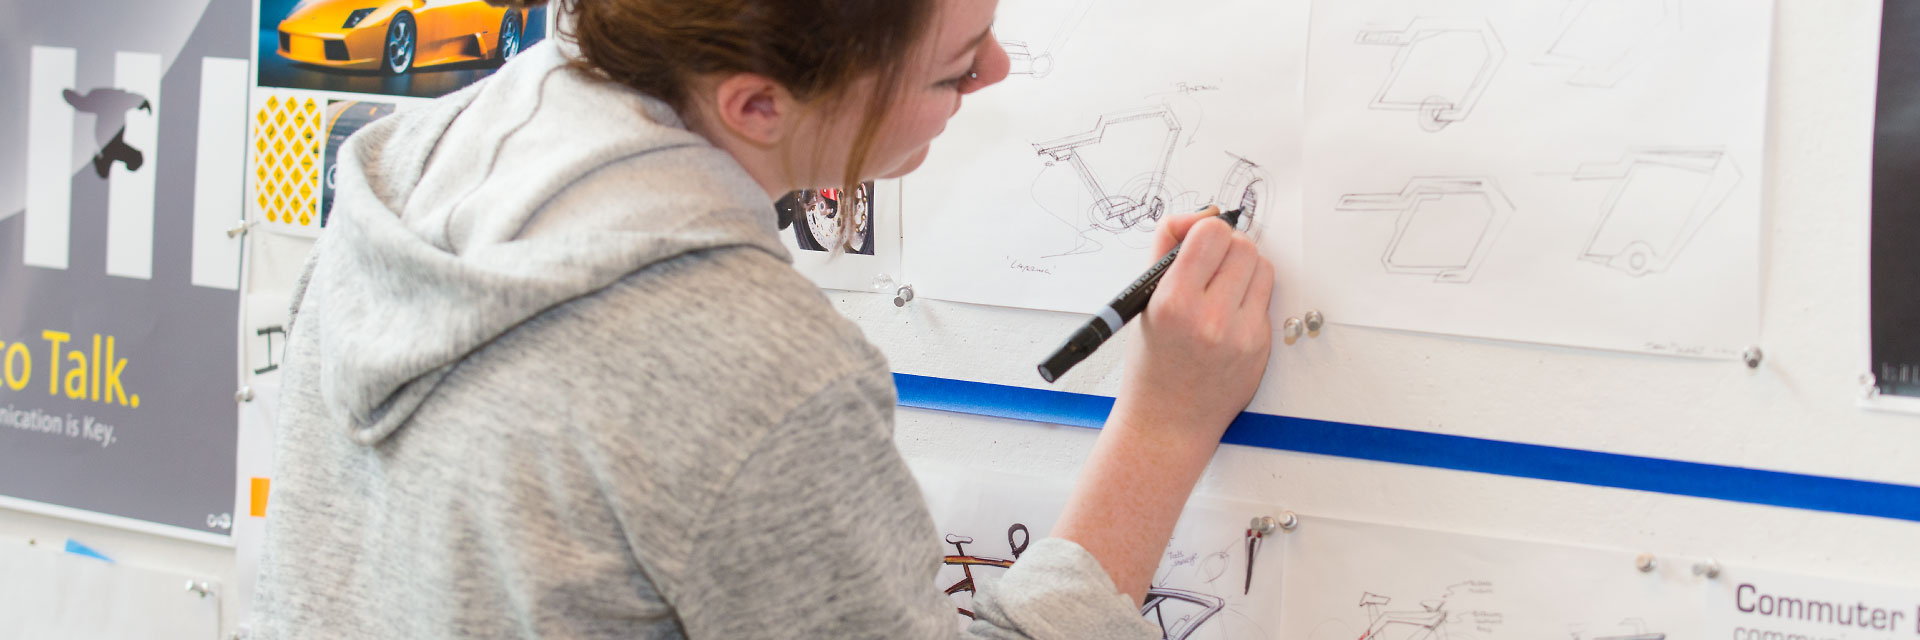 A student sketches on classwork that's pinned to a wall.